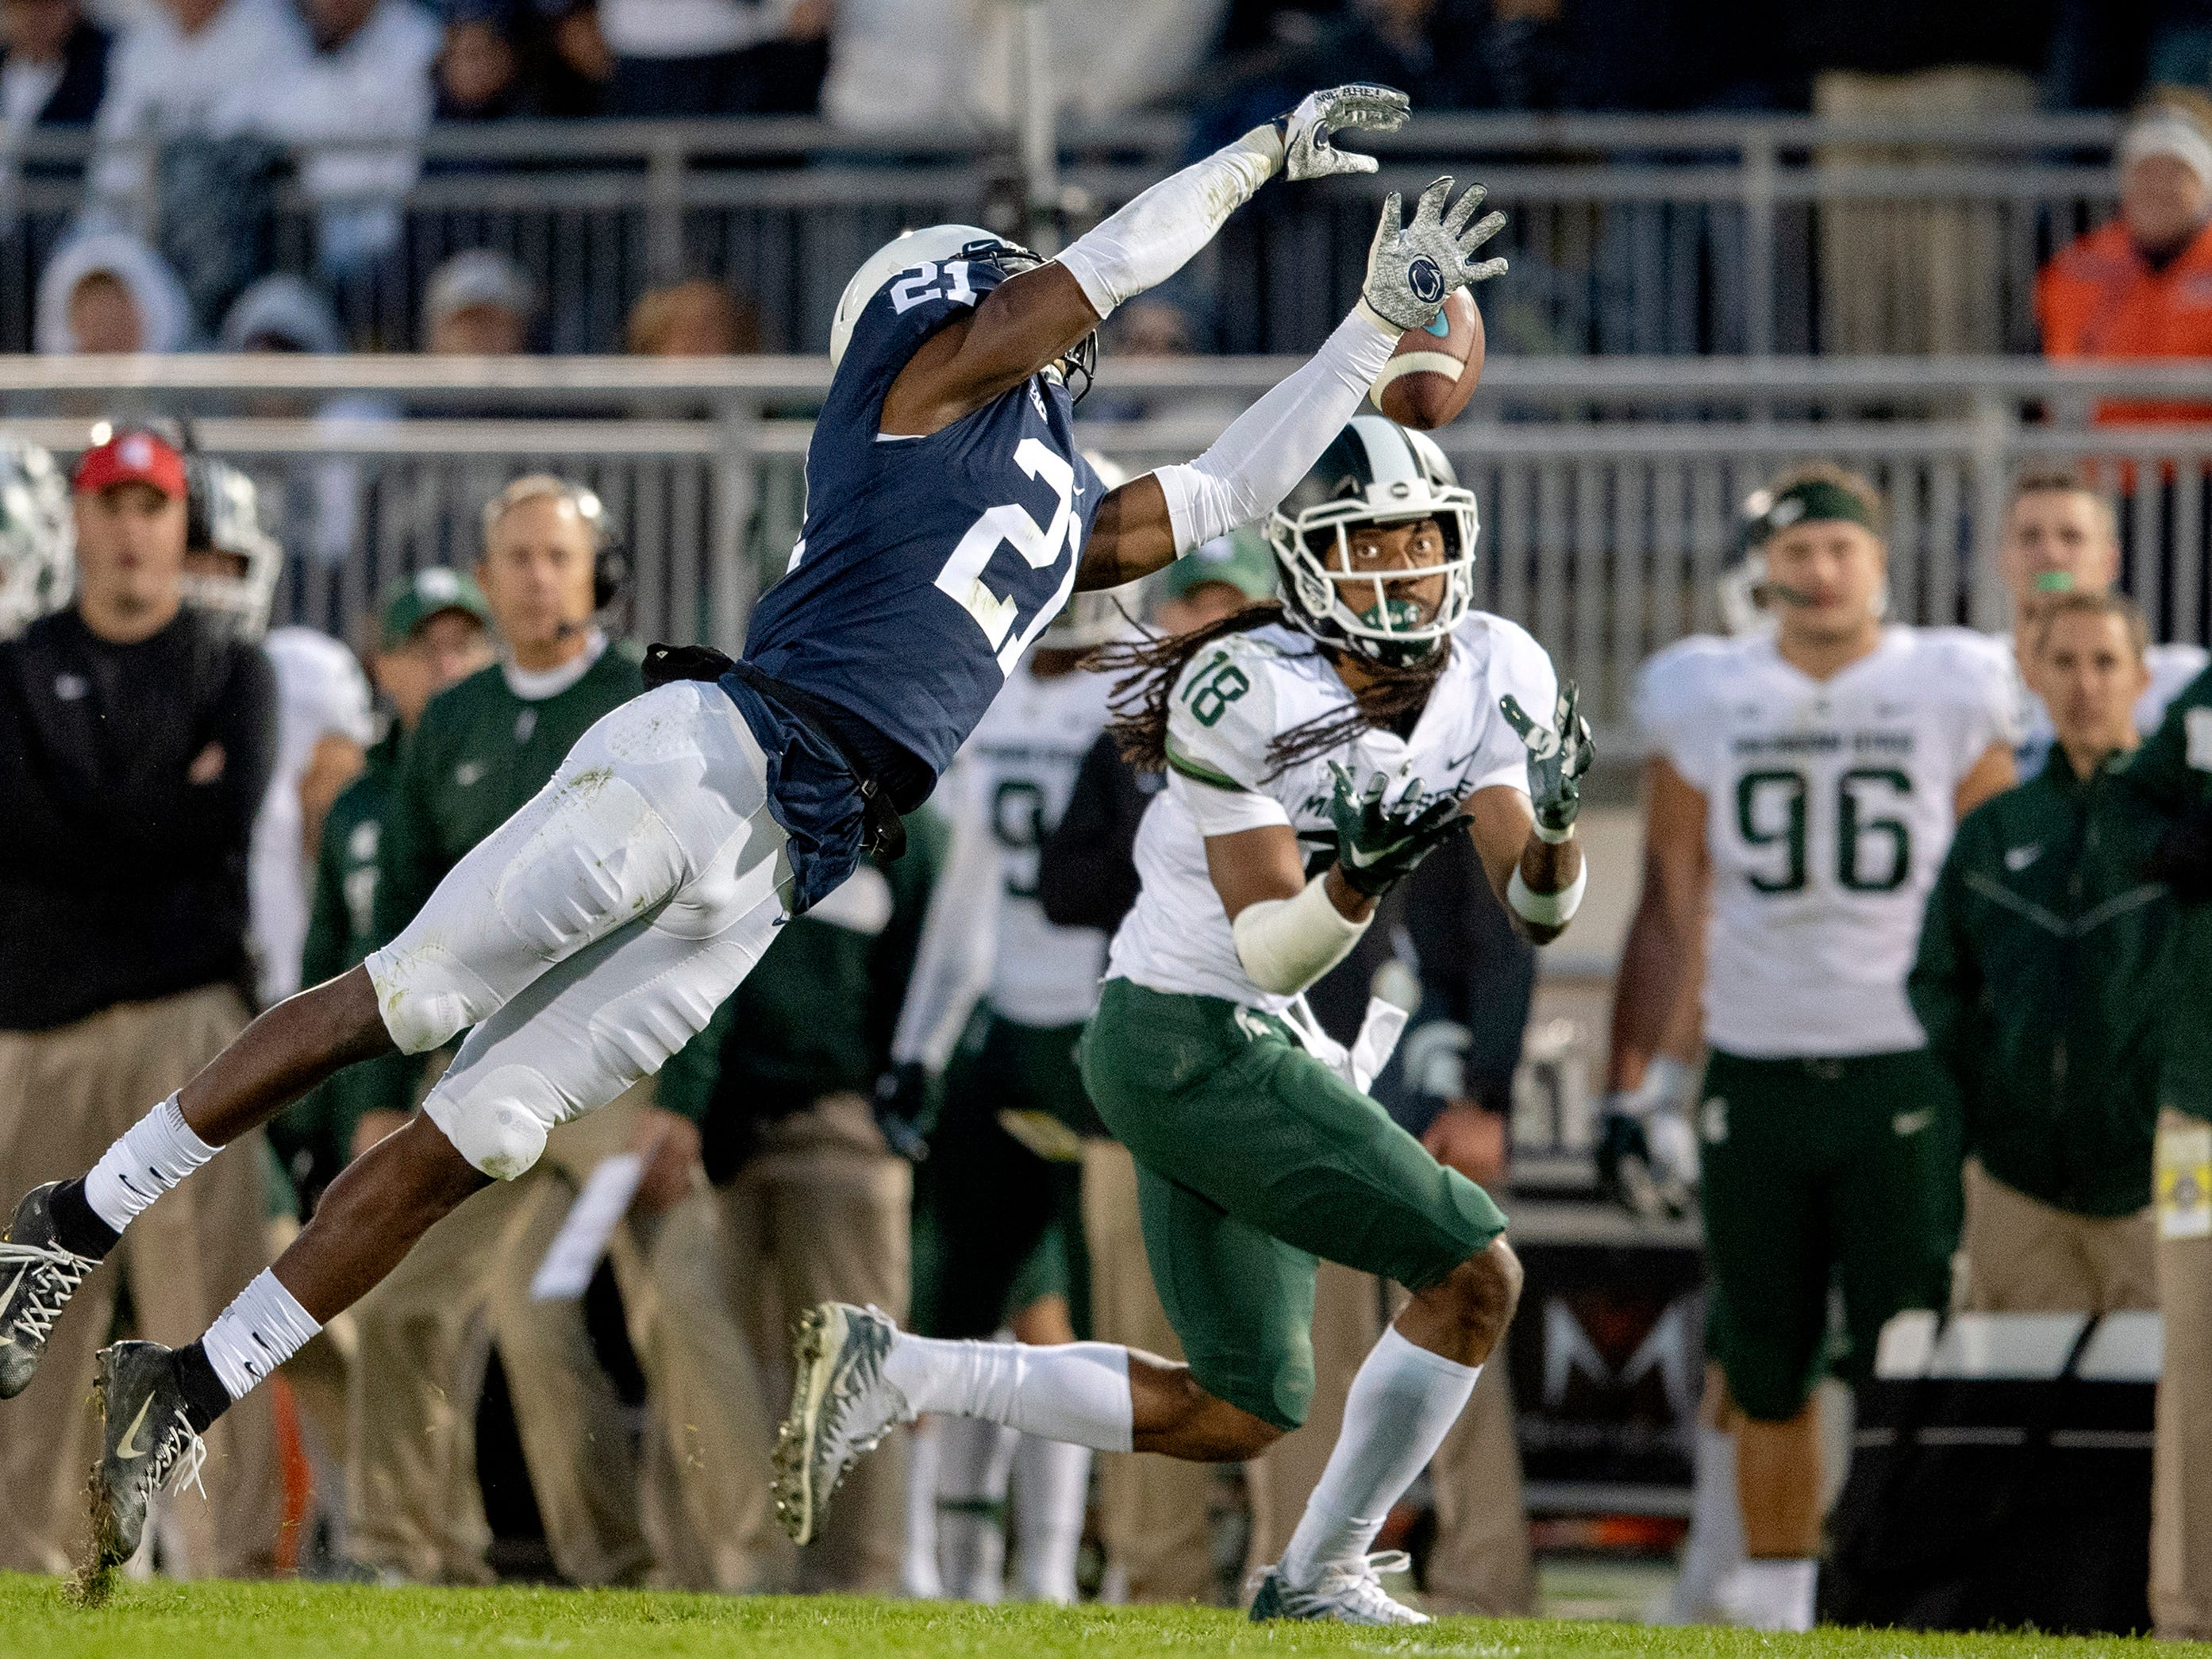 Penn State cornerback Amani Oruwariye can't stop the game-winning 25-yard touchdown pass to Michigan State wide receiver Felton Davis III, right, in the fourth quarter at Beaver Stadium in University Park, Pa., on Saturday, Oct. 13, 2018. The visiting Spartans won, 21-17. (Abby Drey/Centre Daily Times/TNS)